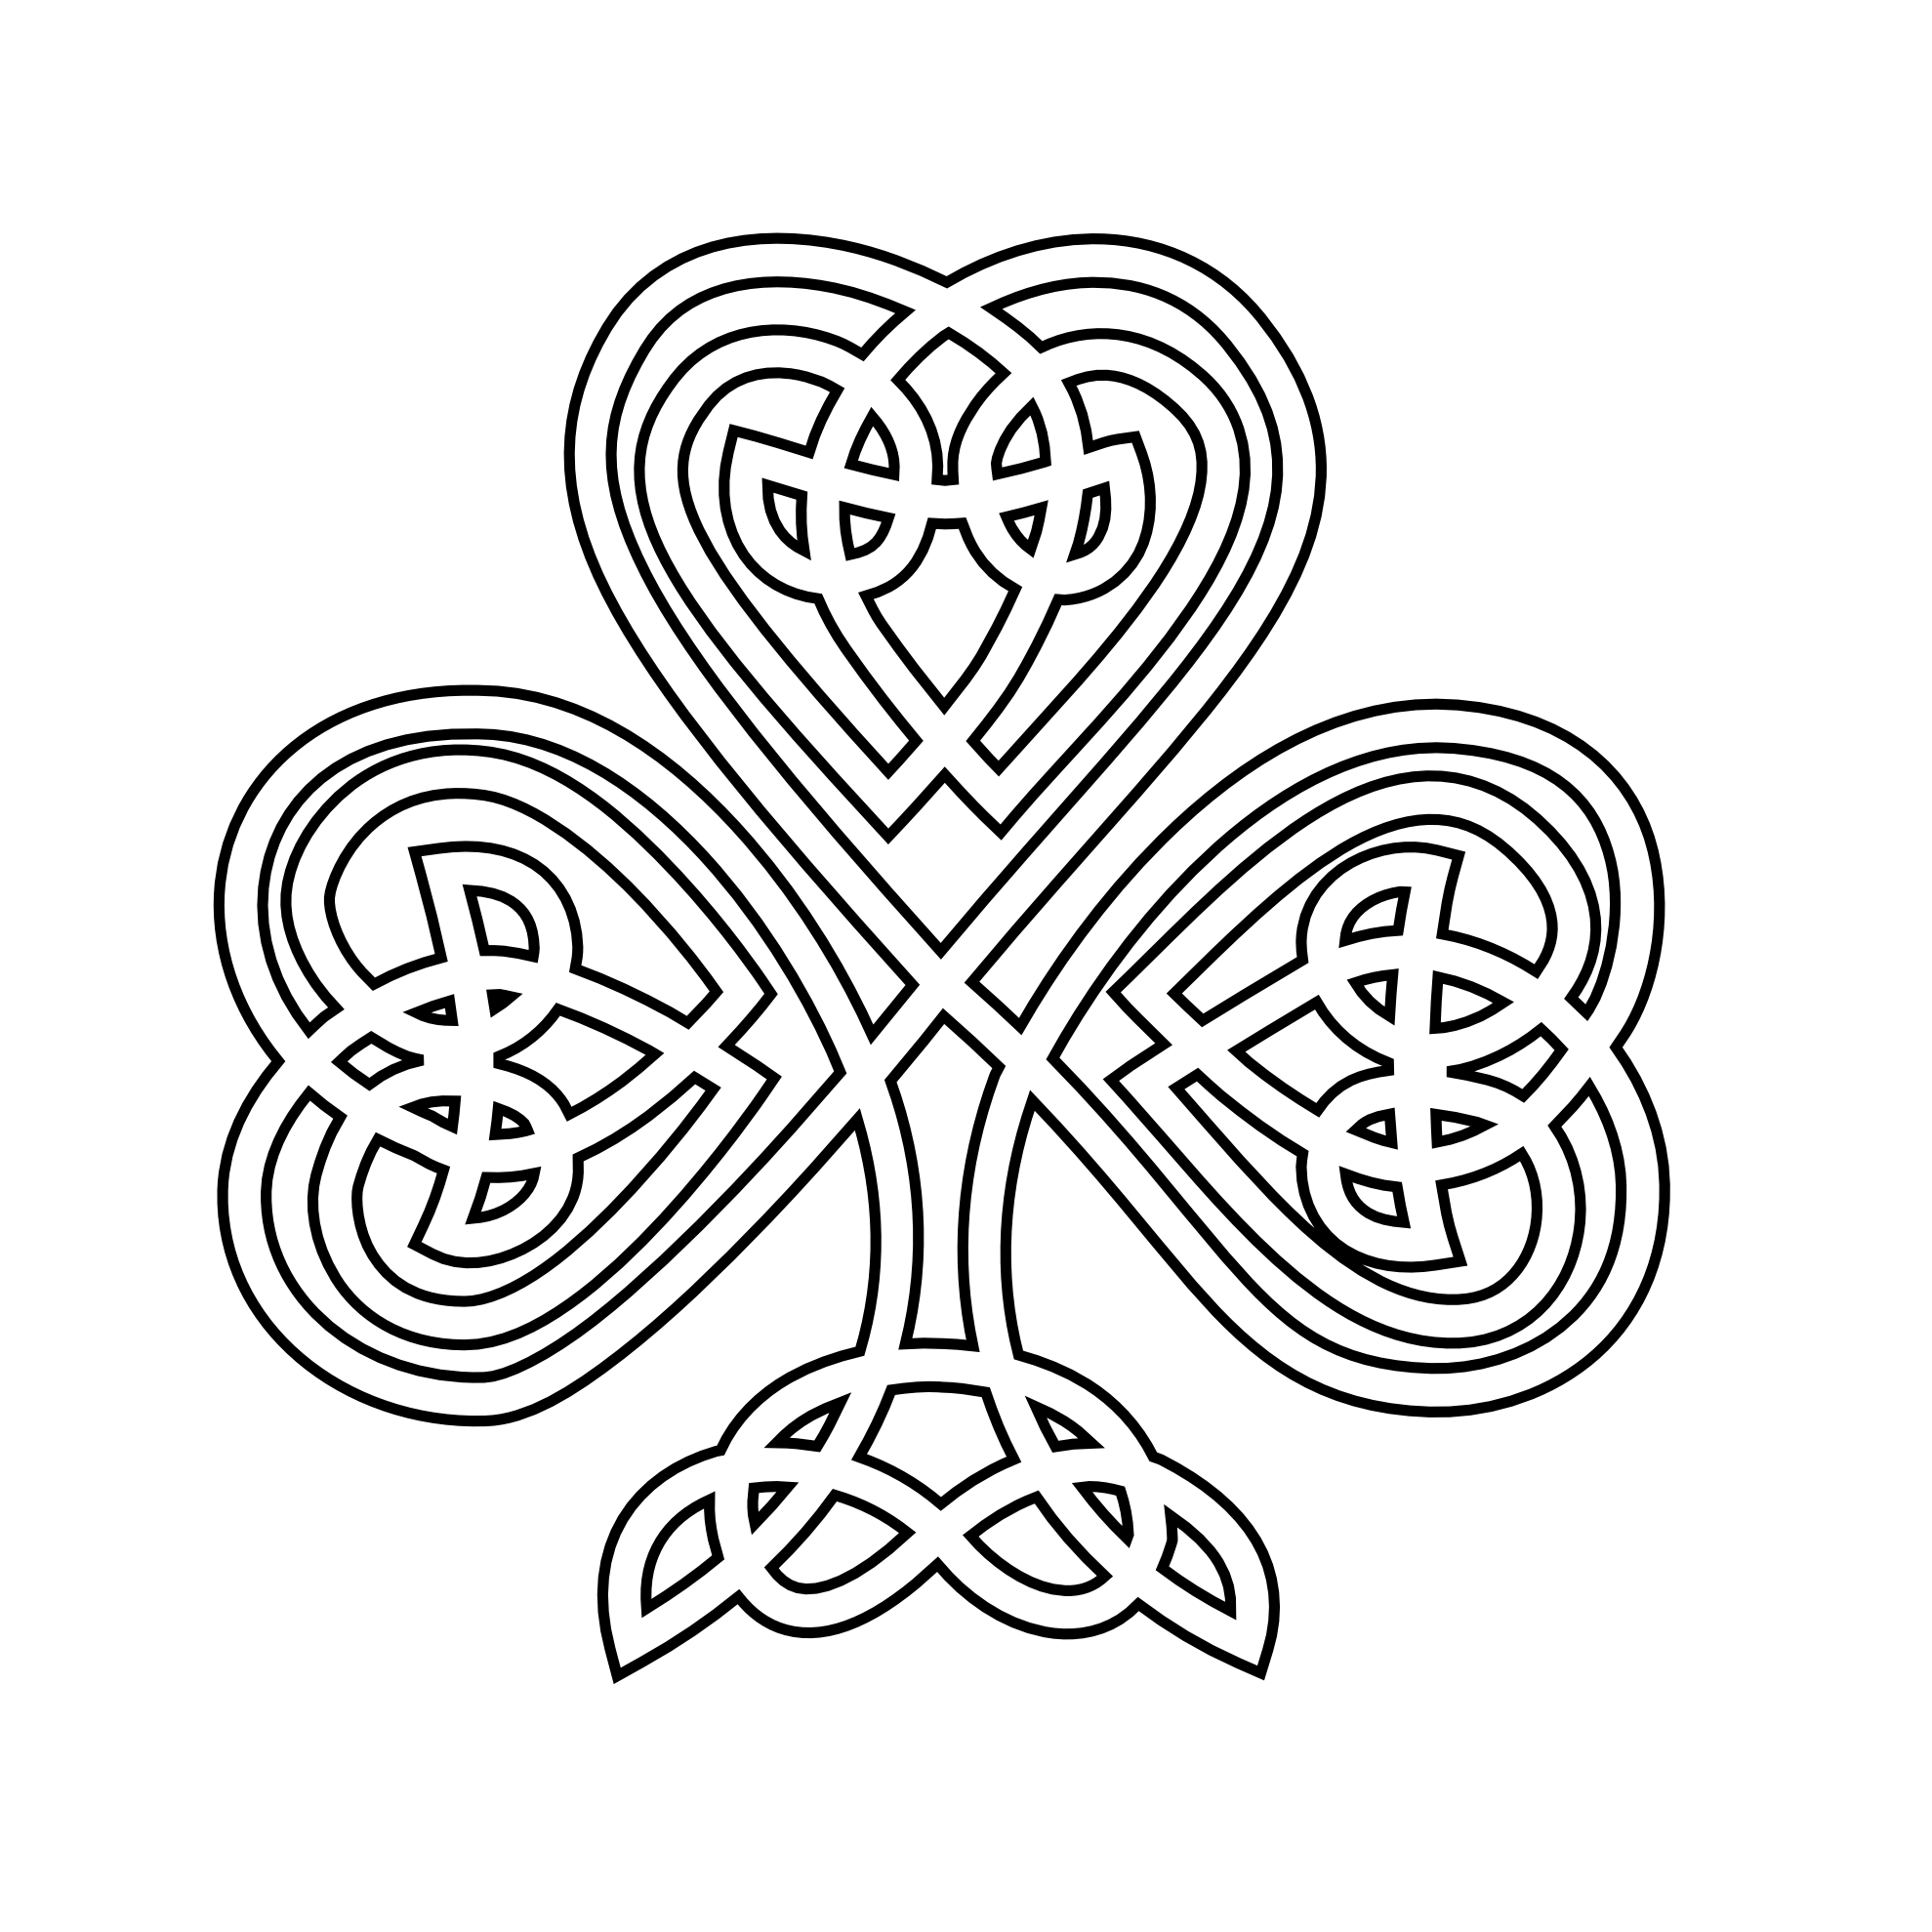 Green celtic cross png. Shamrock black white line